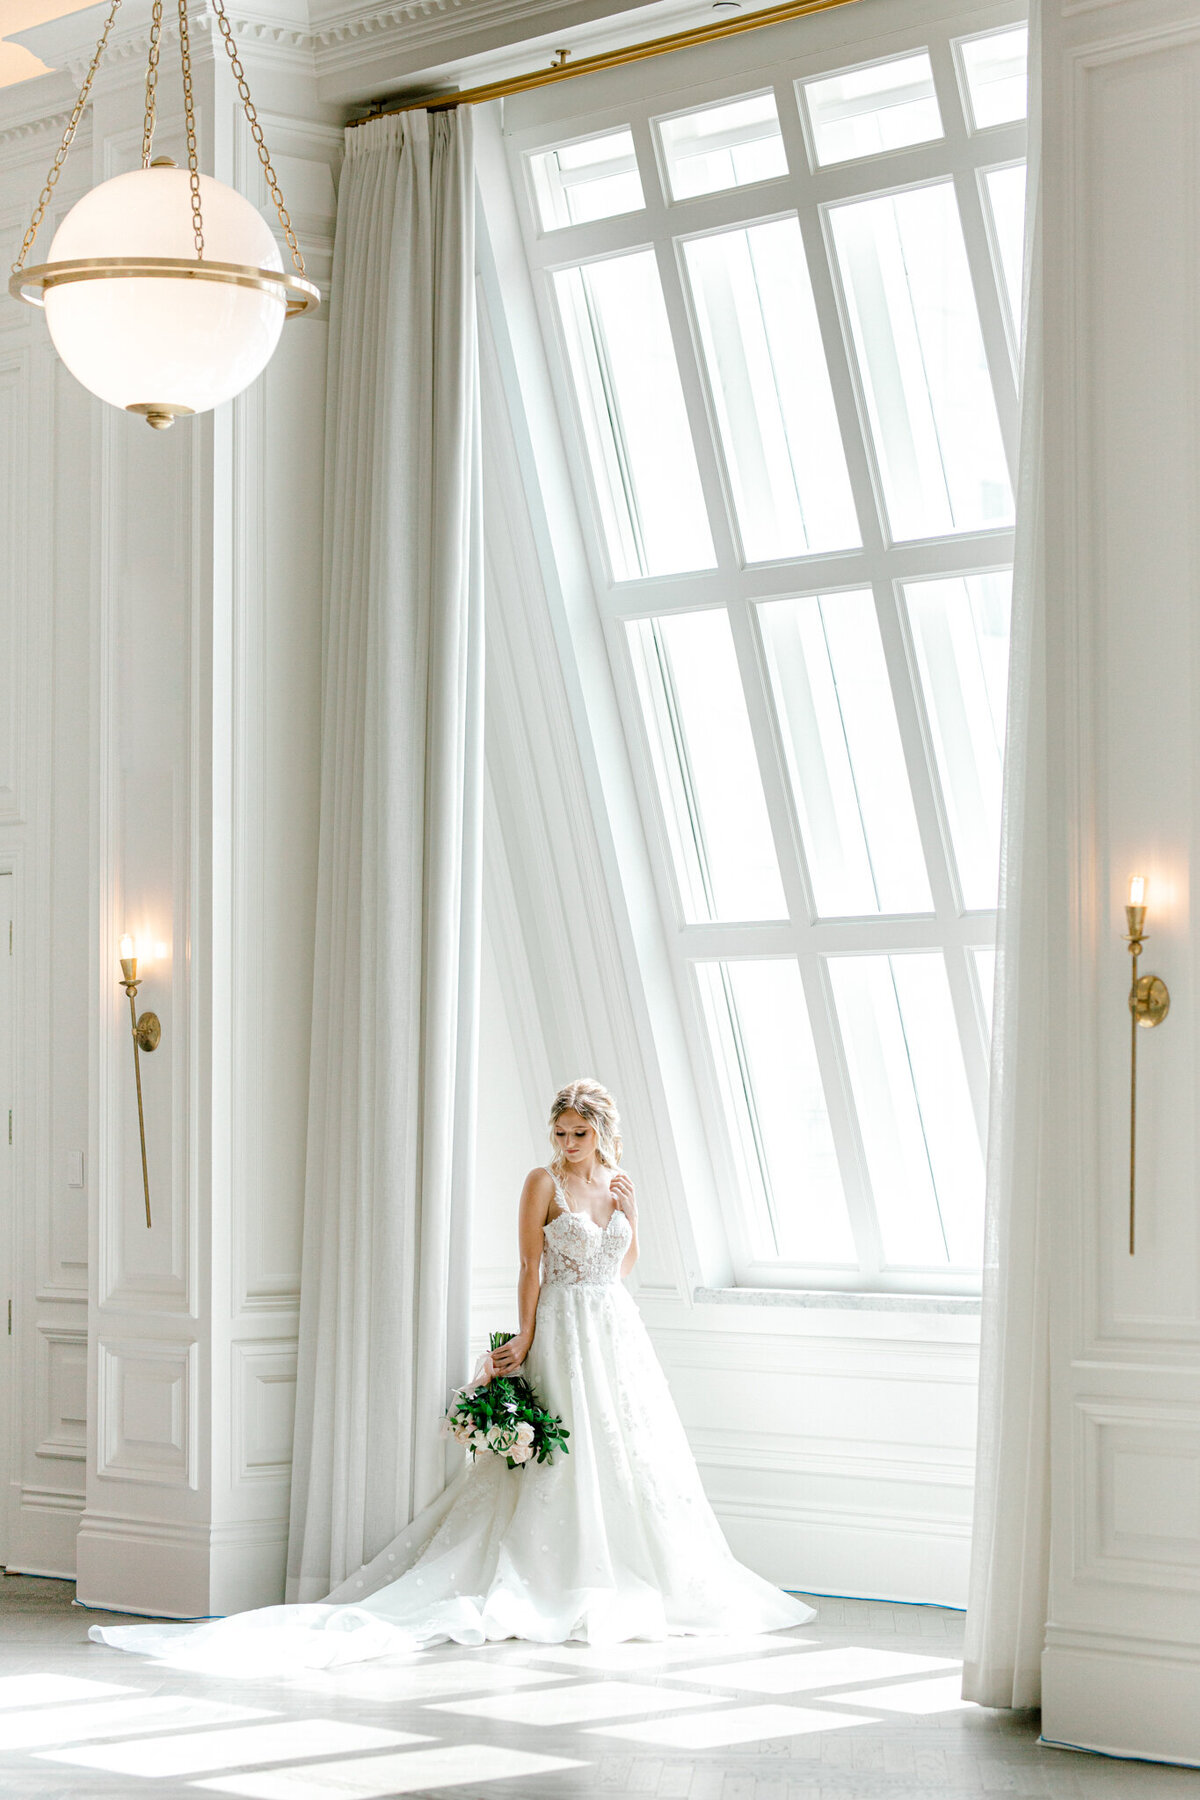 Wedding Inspiration at the Adolphus 19th Floor Ballroom | Dallas Wedding Photographer | Sami Kathryn Photography-1